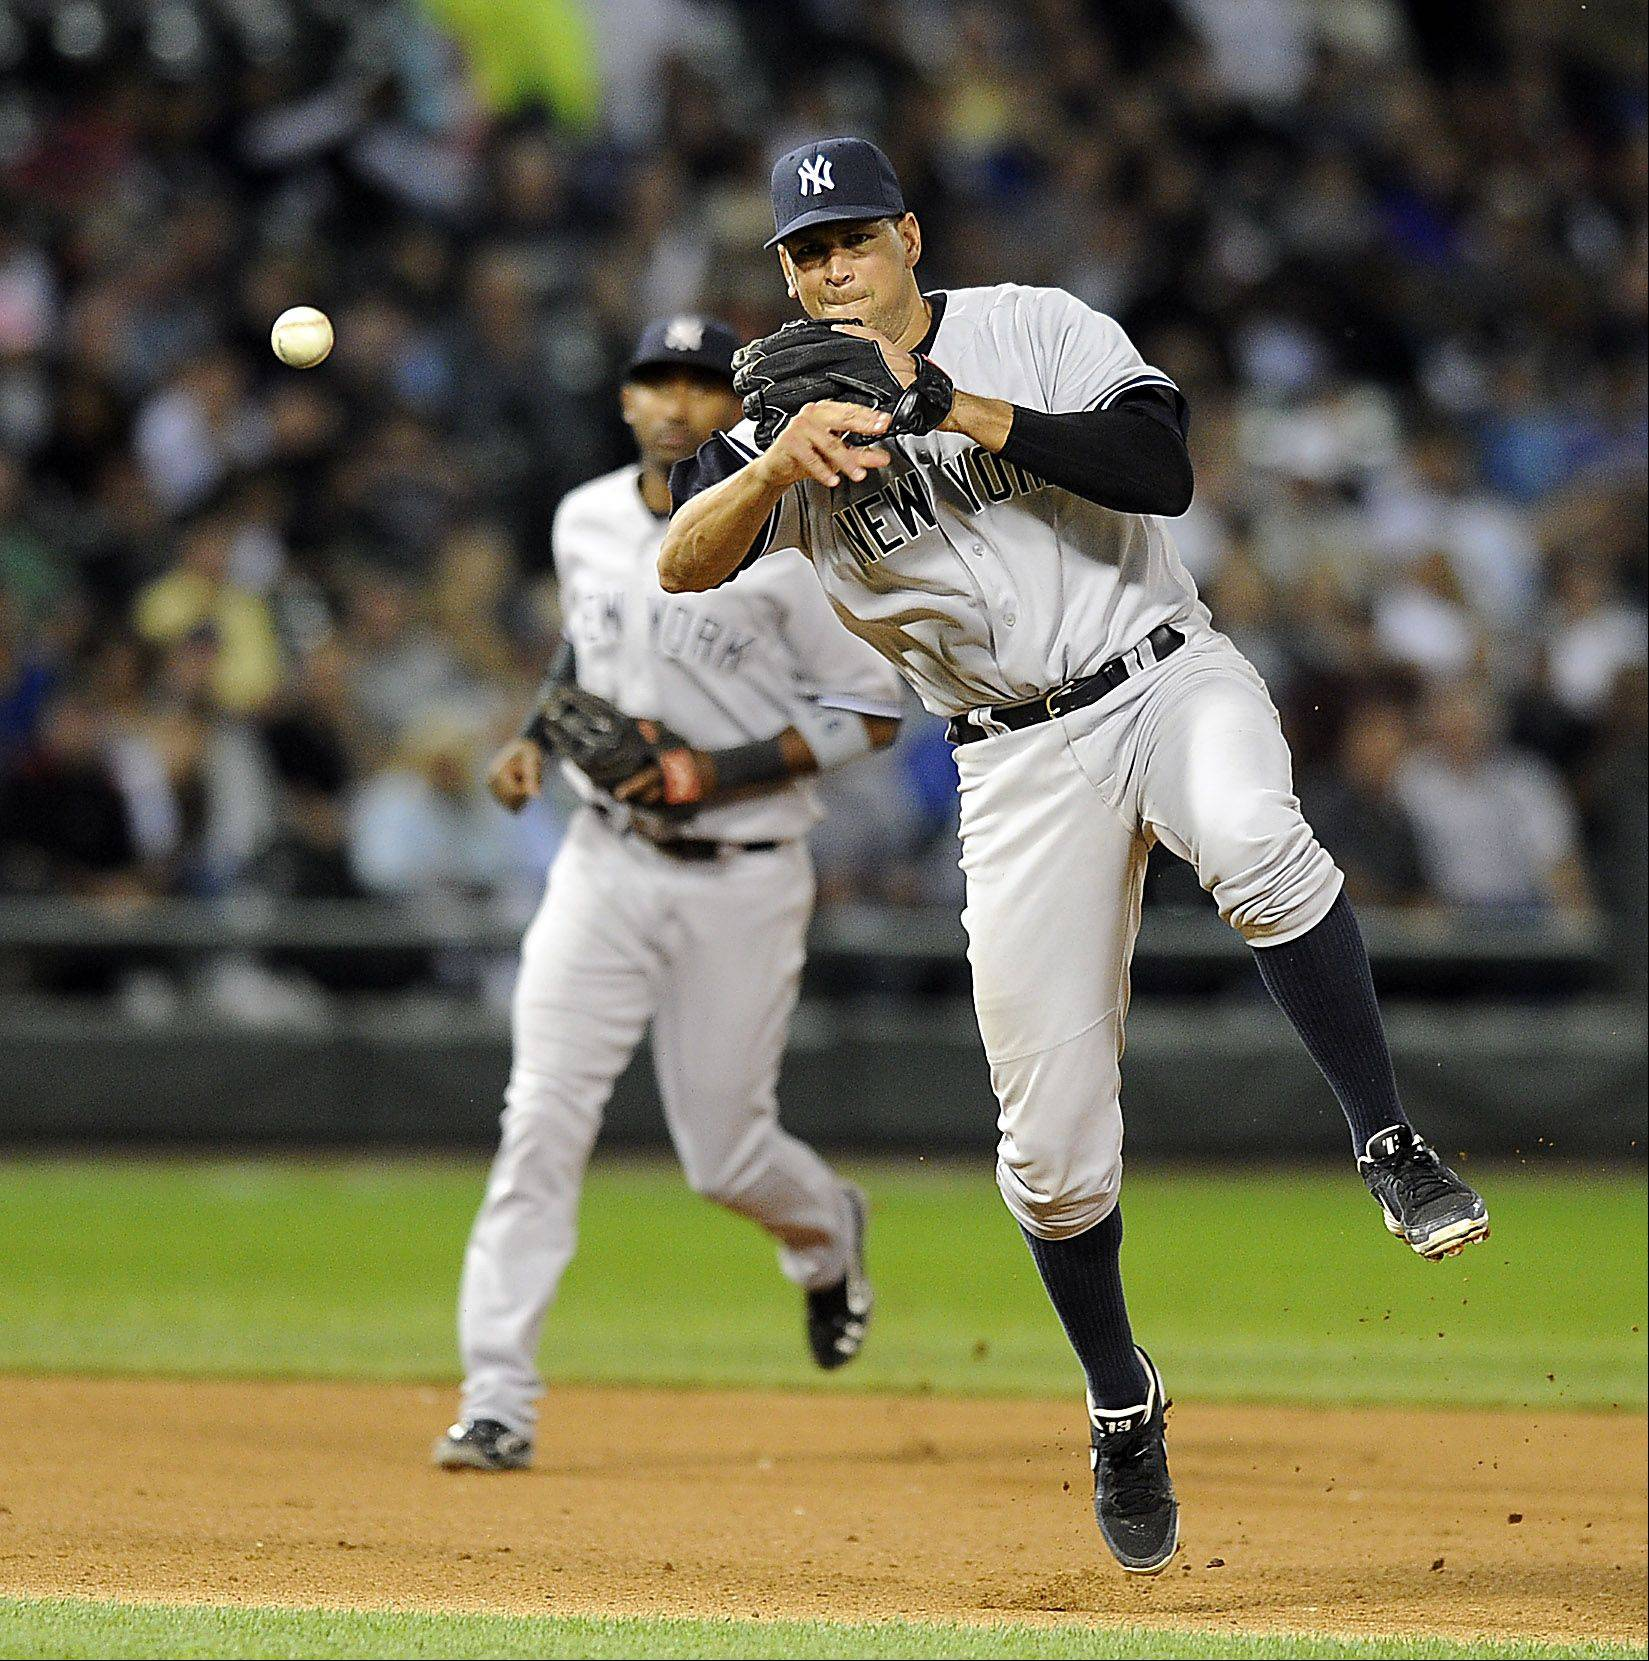 New York Yankees Alex Rodriguez throws out White Sox's Jeff Keppinger in the 6th inning.